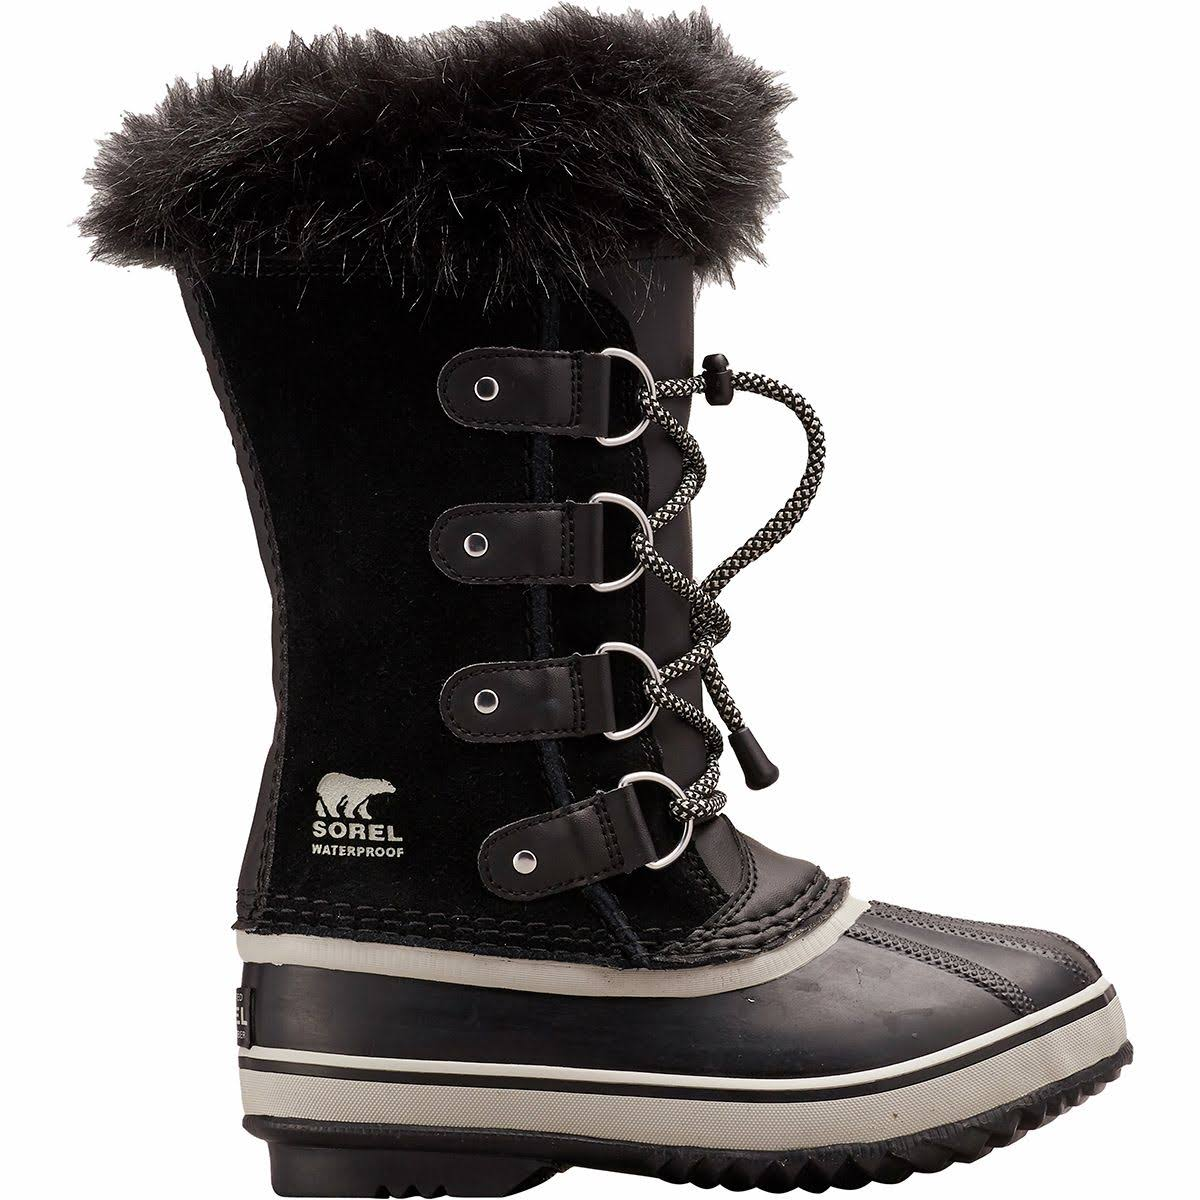 Sorel Youth Joan of Arctic Boot - 3 - Black / Dove